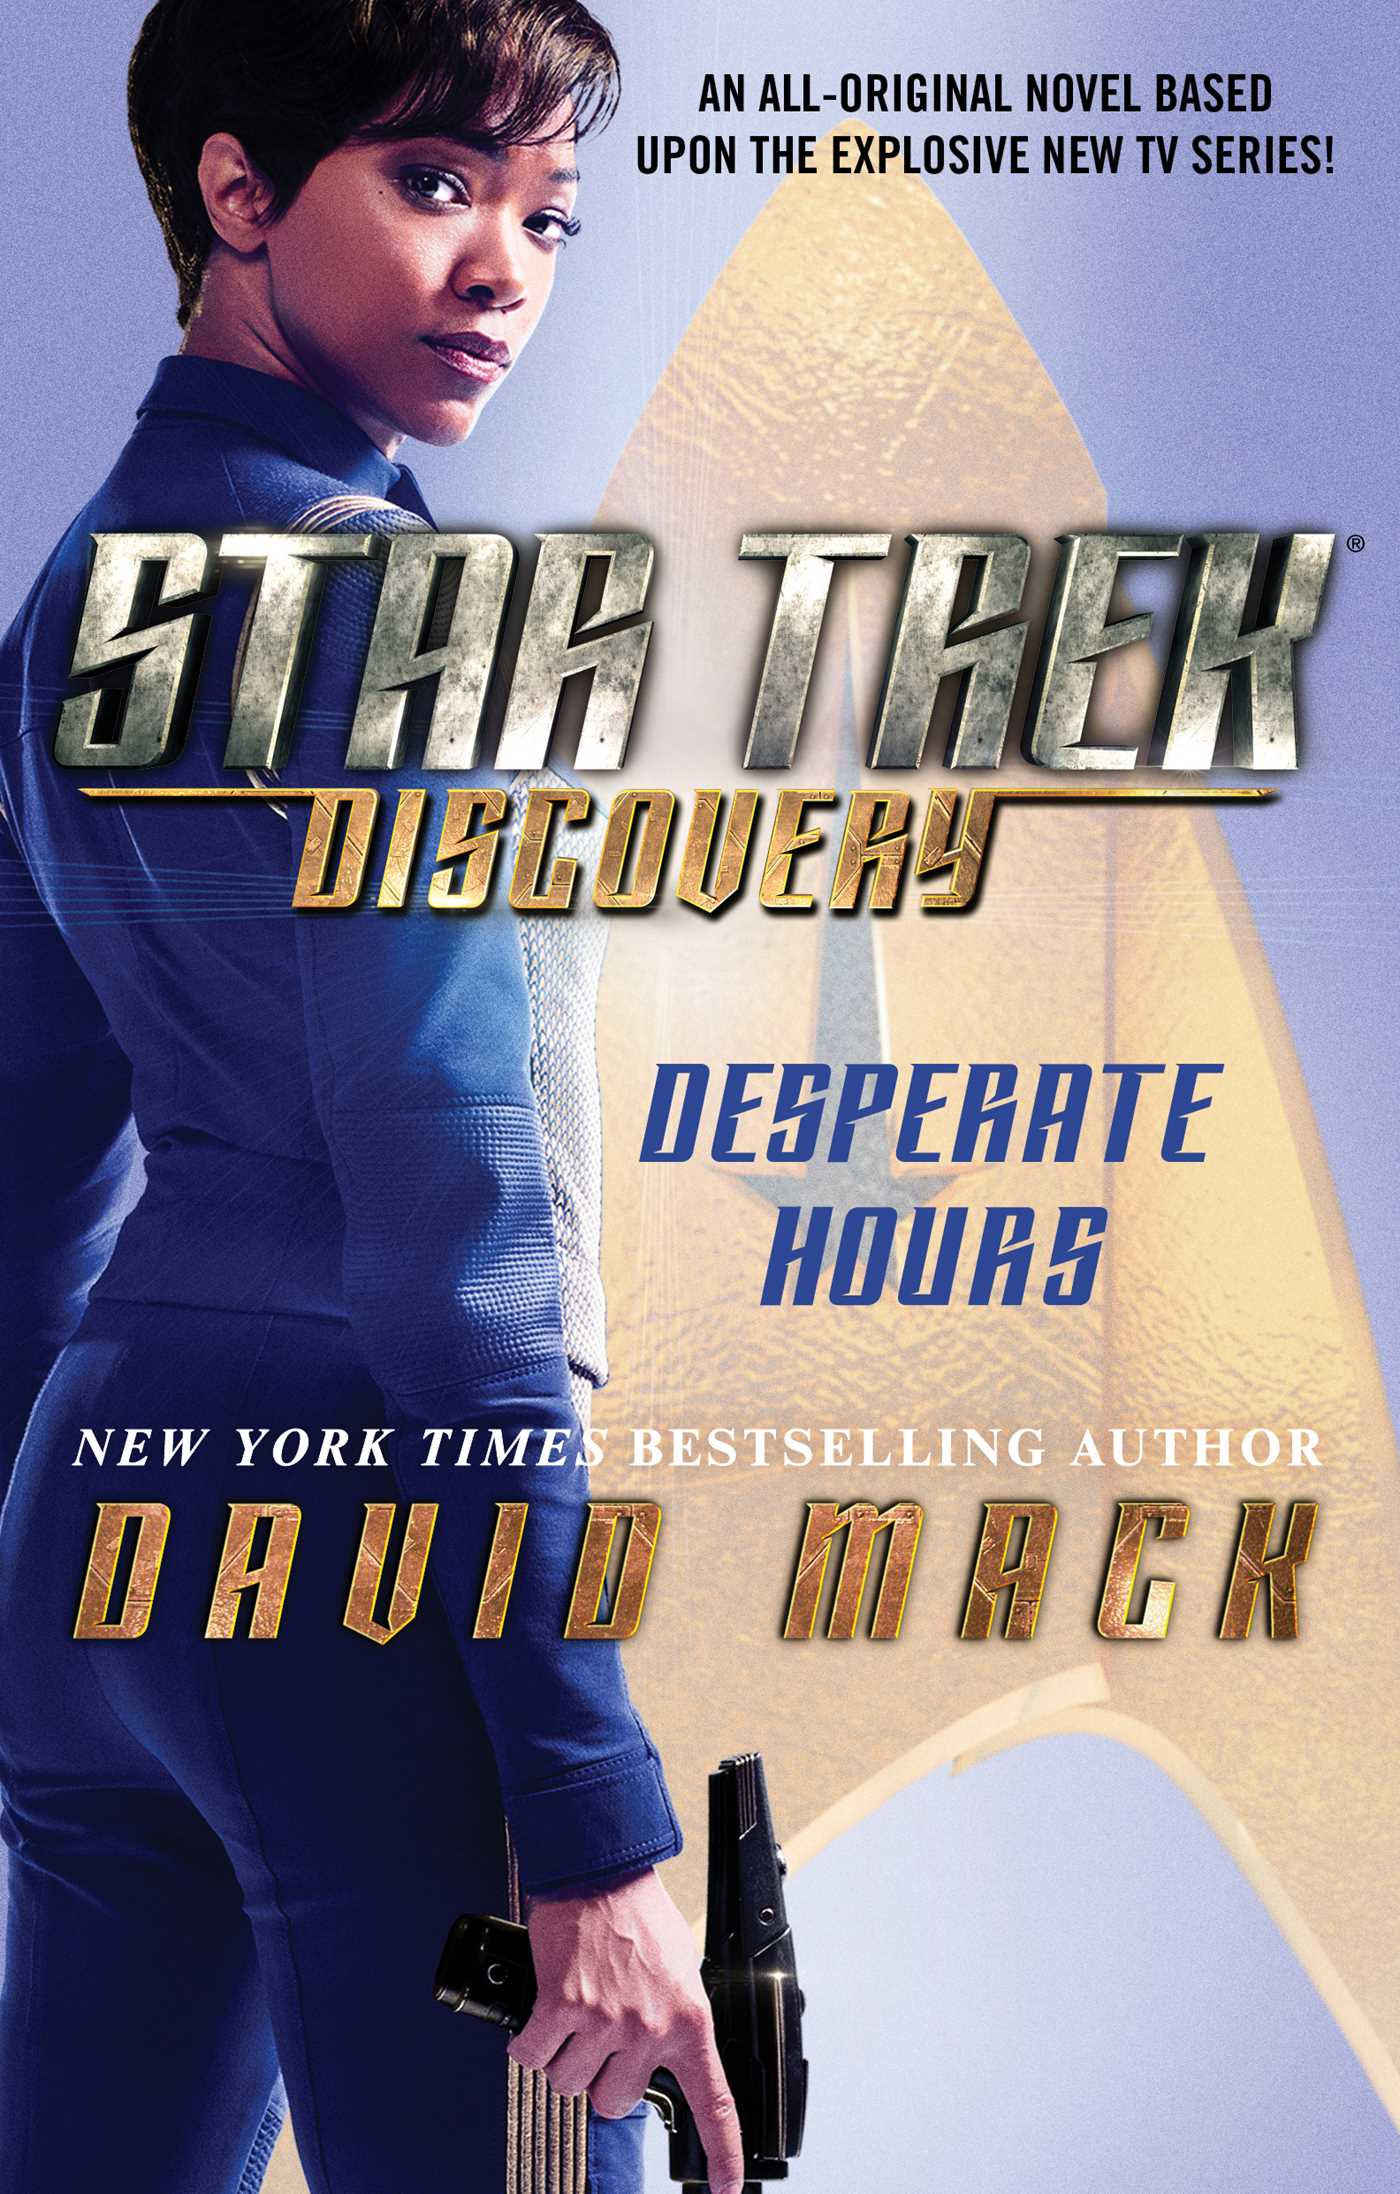 Star trek discovery desperate hours 9781501164576 hr